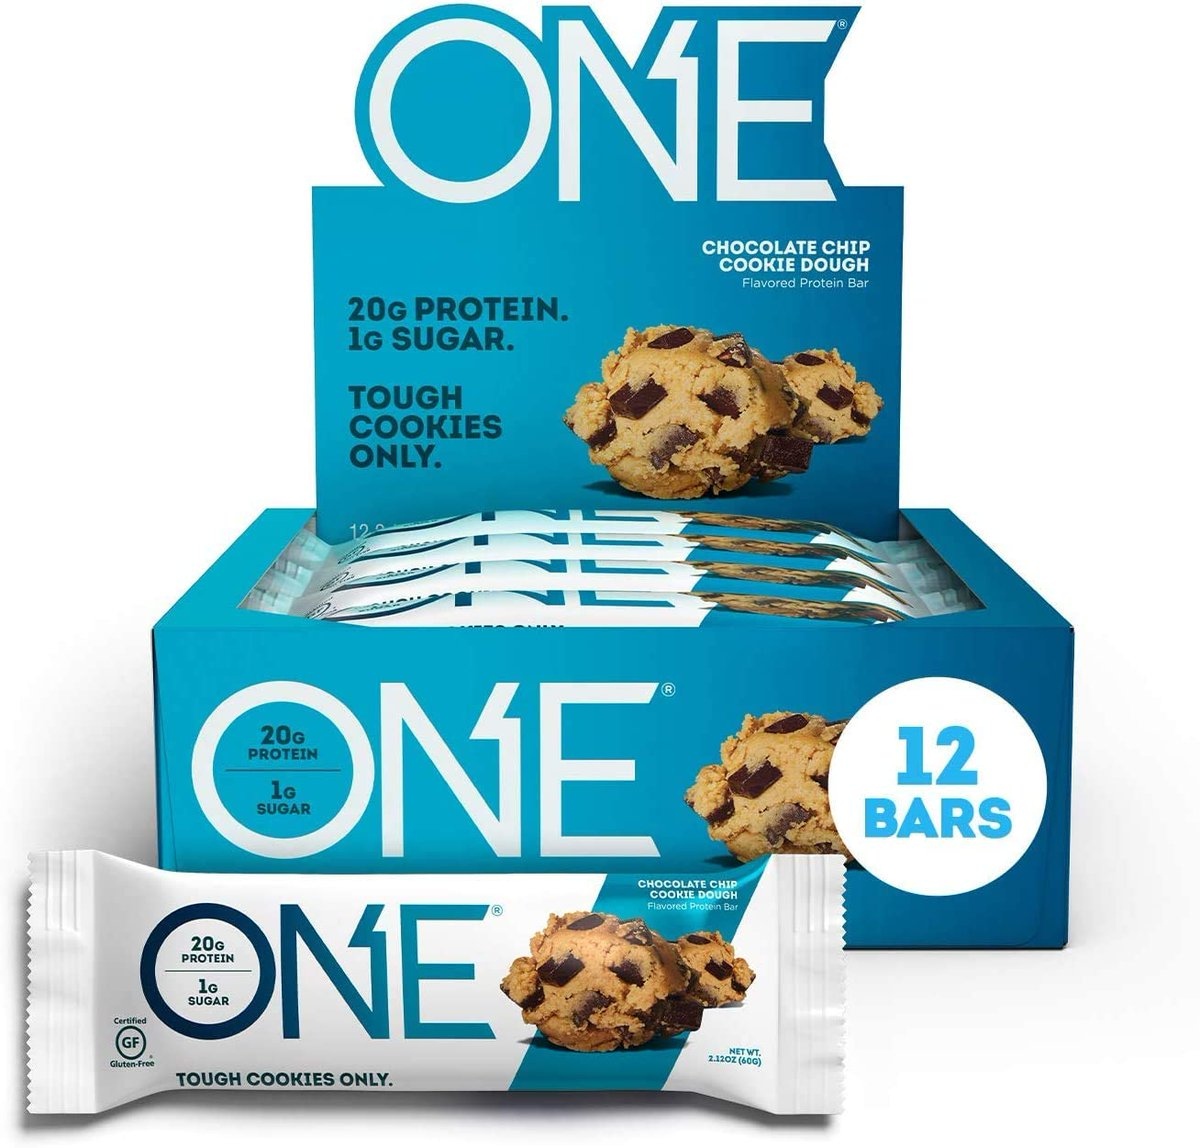 ONE Protein Bar 12 pack for ONLY $17.49 Today. Many flavors to choose from.   Subscribe and You Can Save More  https://t.co/JnJNdwZtp7  #HealthyEating #healthylifestyle #deals #DealoftheDay #bargains #sales #discounts #Amazon https://t.co/4WT6J7fOiX